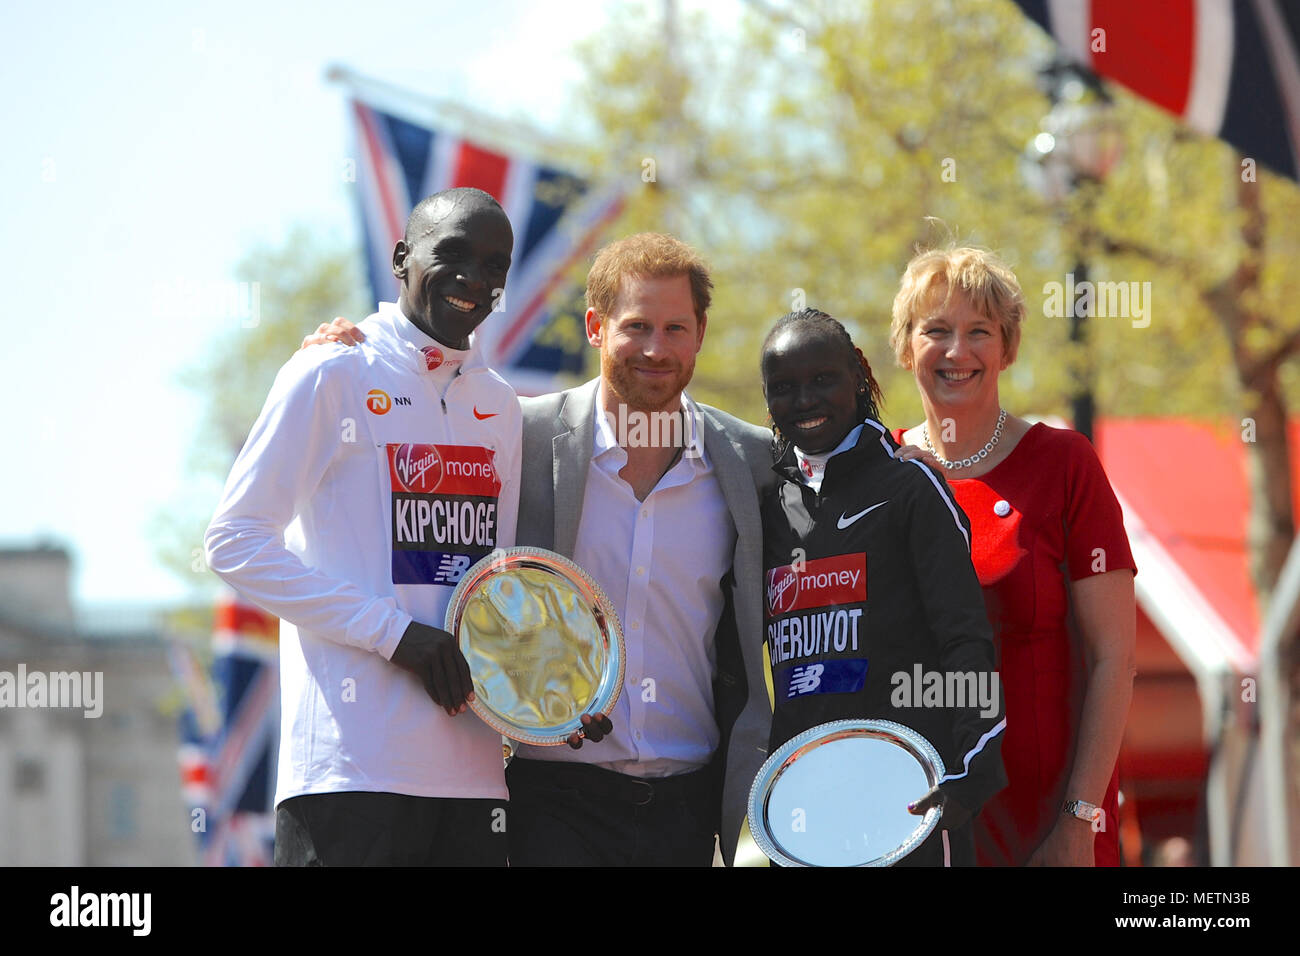 Elud Kipchoge (KEN) and Vivian Cheruiyot (KEN) on the podium with His Royal Highness Prince Harry and  Anne Gadhia (CEO of Virgin Money UK) during the prize giving ceremony for the Virgin Money London Marathon Wheelchair Races, The Mall, London, United Kingdom.  Eliud Kipchoge had earlier confirmed his status as the king of the marathon when he won the Virgin Money London Marathon men's race for the third time with a time of 2:04:17.  Cheruiyot ran a perfectly judged race to take the title in the elite women's race and become the fourth fastest woman of all time over the gruelling marathon dis Stock Photo